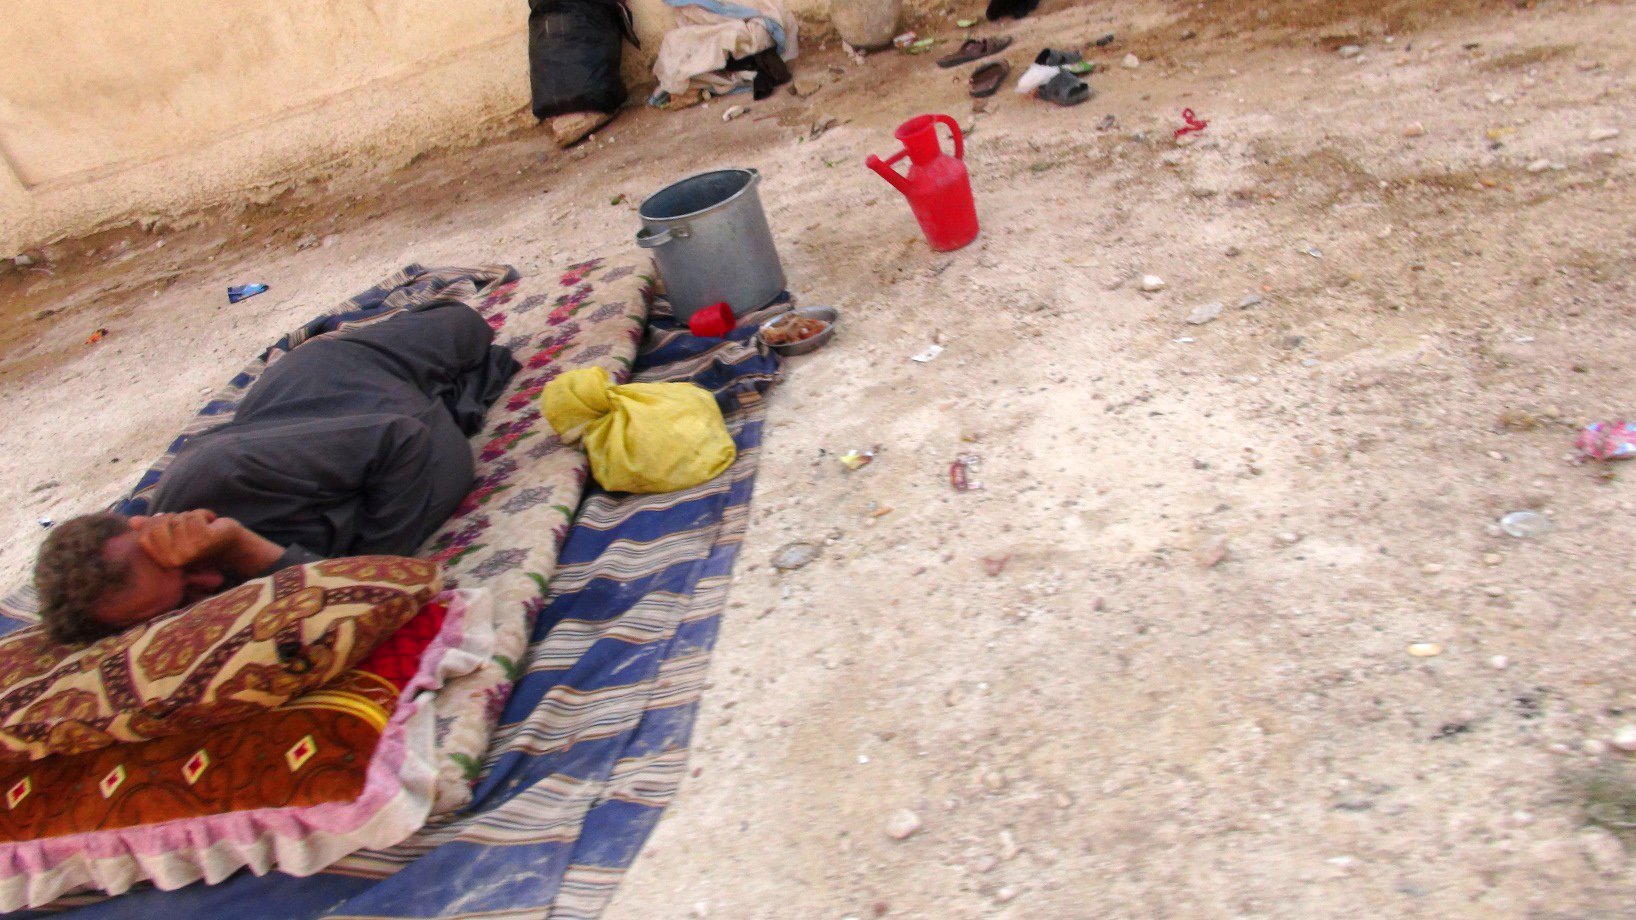 A displaced man sleeps in Syria. Many communal shelters are poorly equipped, lacking furniture and access to basic hygiene